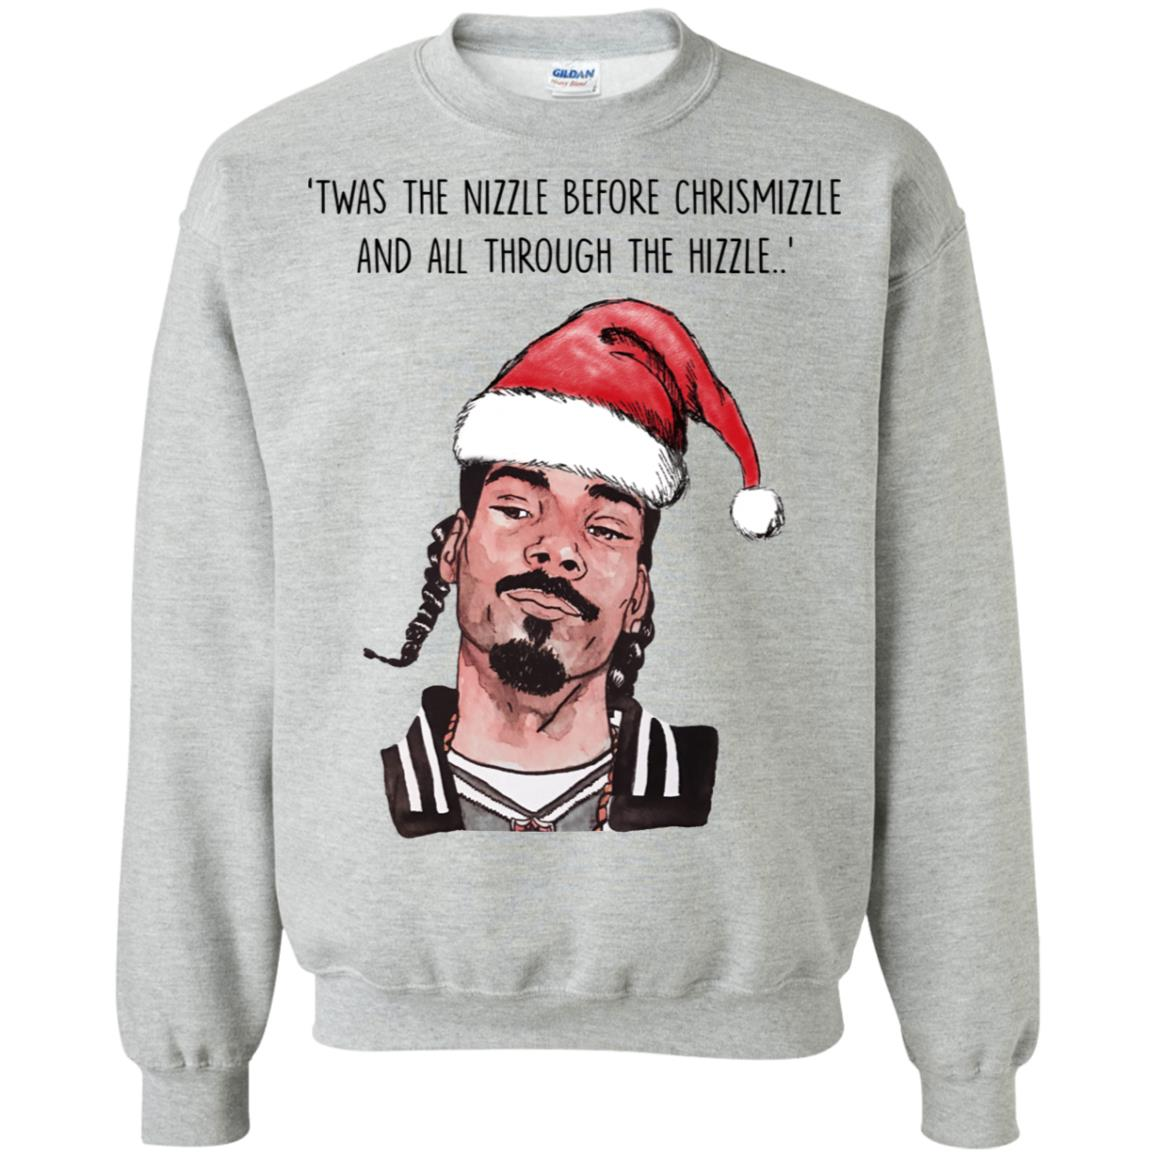 Snoop Dogg Twas The Nizzle Before Chrismizzle And All Through The